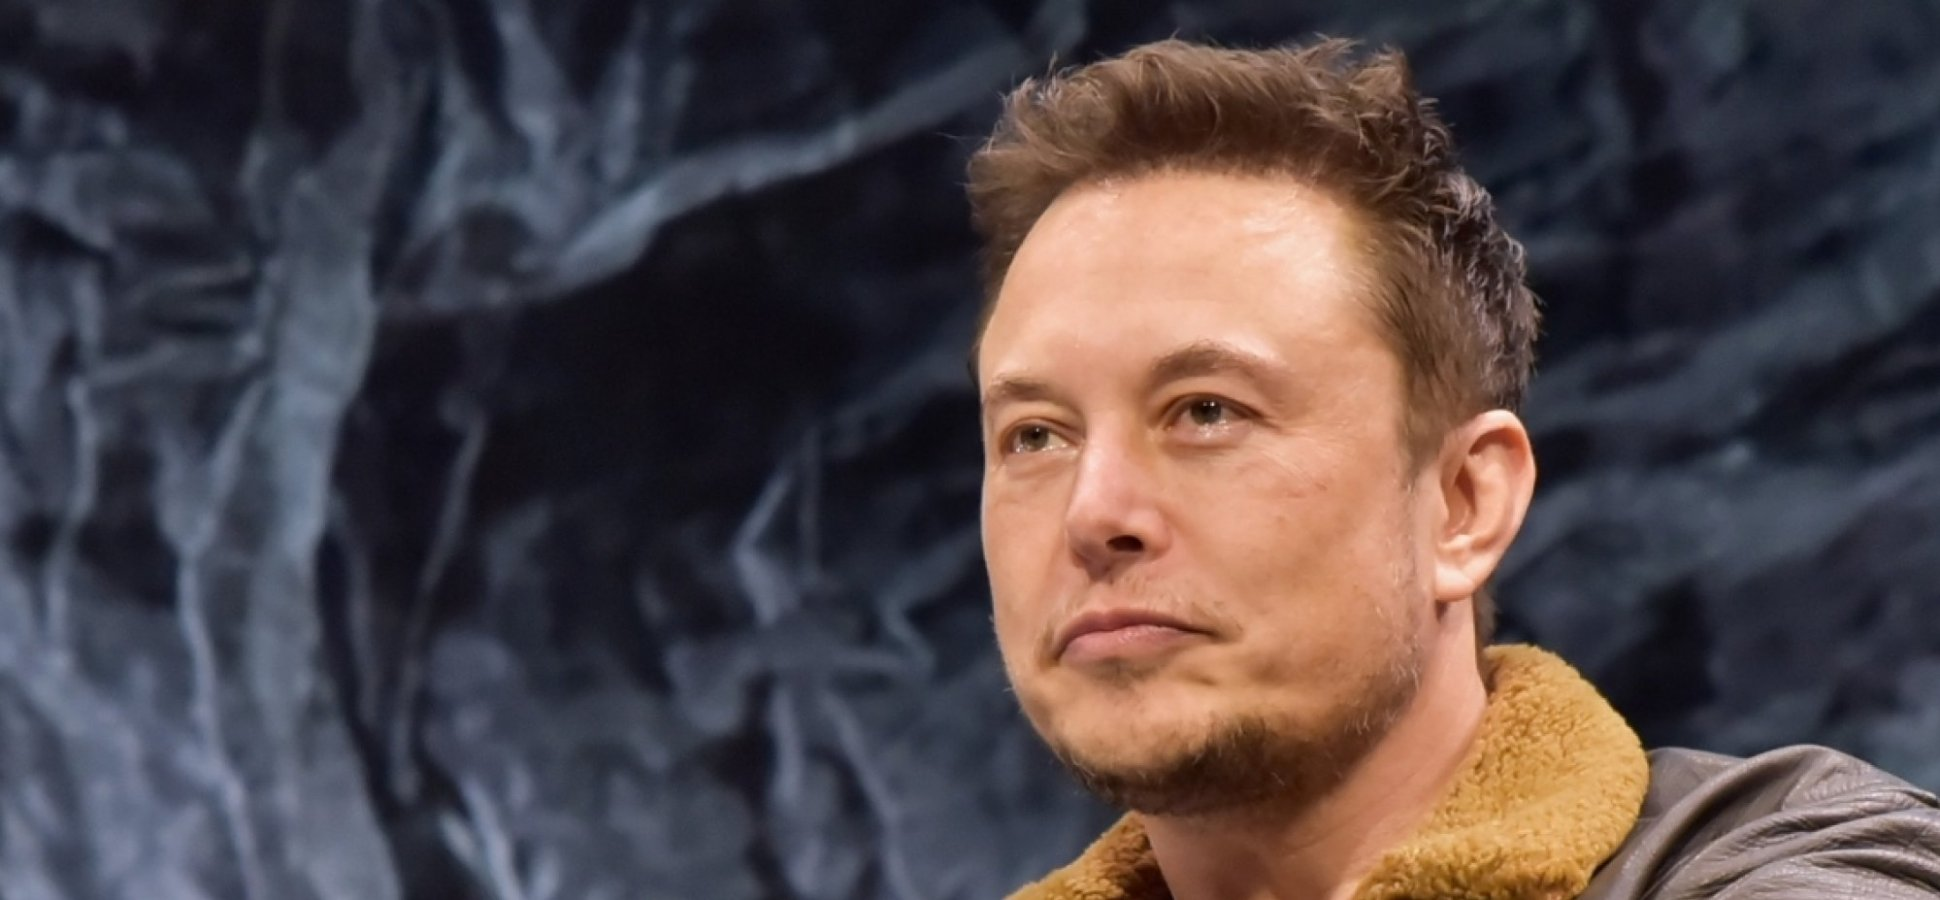 Elon Musk Cut the Gordian Knot of Corporate Spending